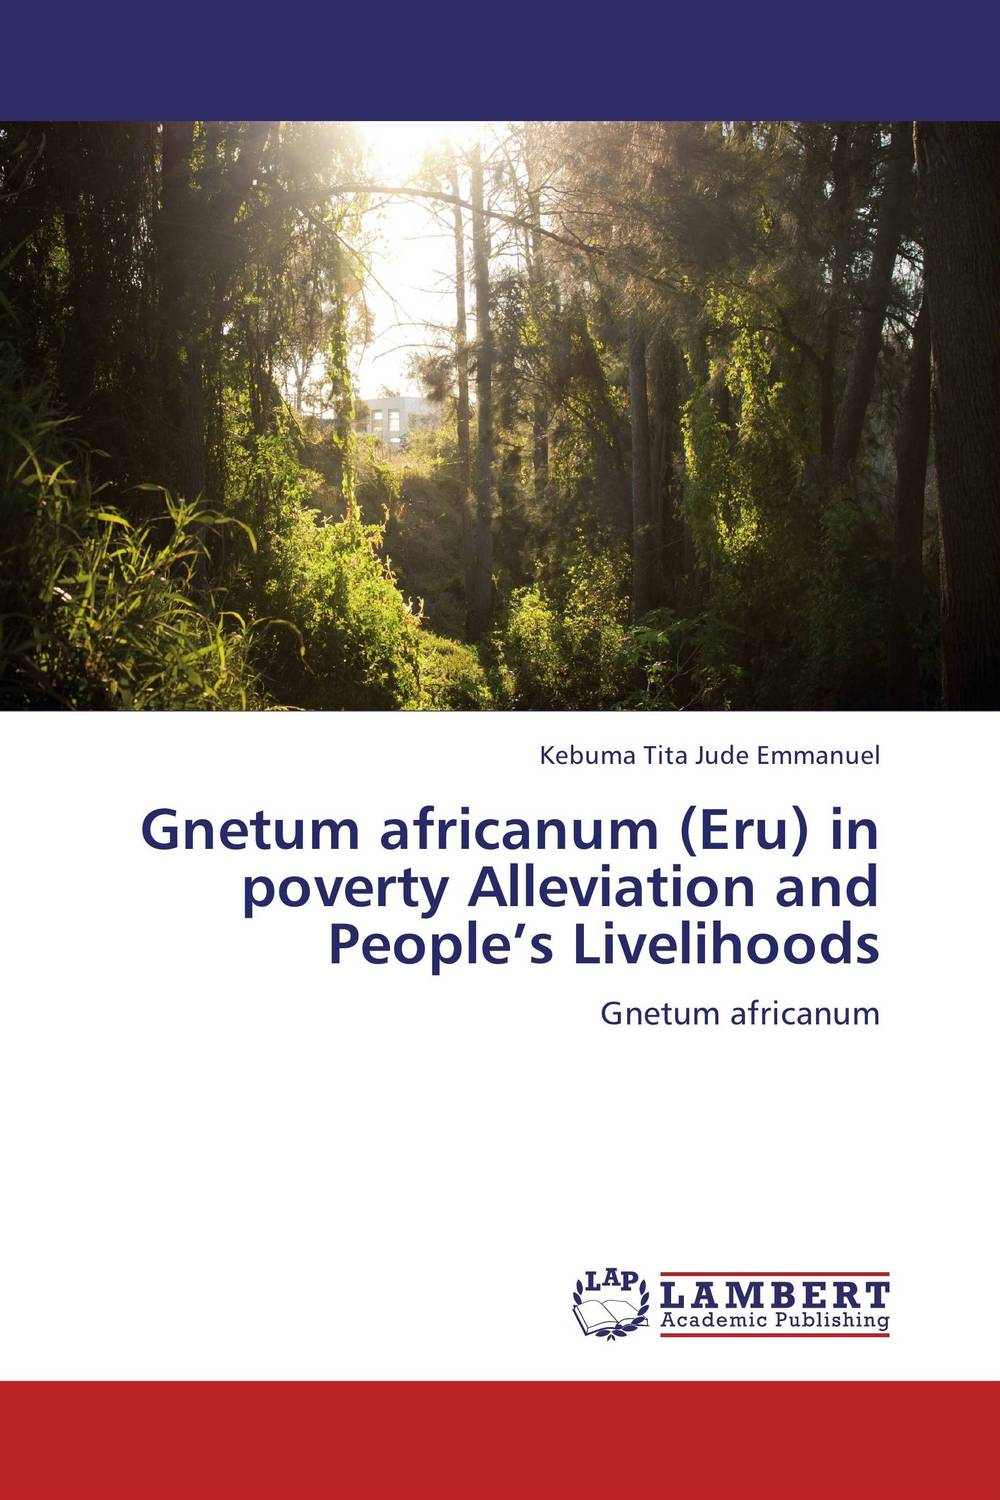 Zakazat.ru Gnetum africanum (Eru) in poverty Alleviation and People's Livelihoods